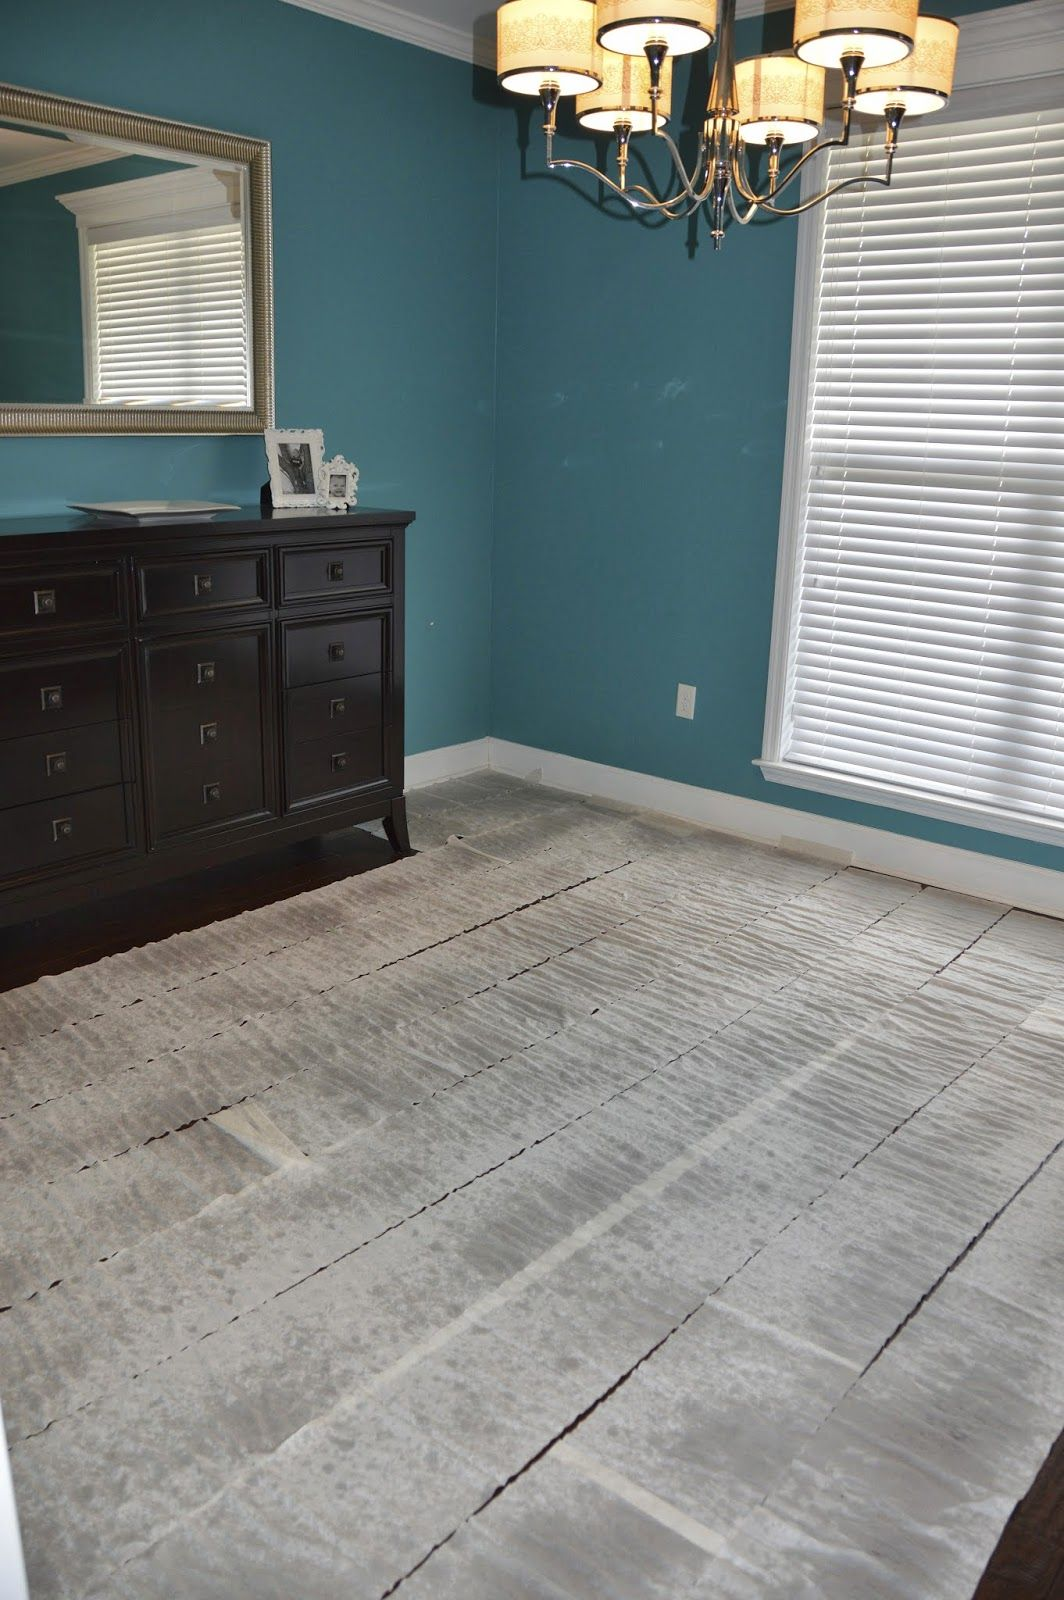 Removing Pet Stains from Hardwood Floors Remove pet